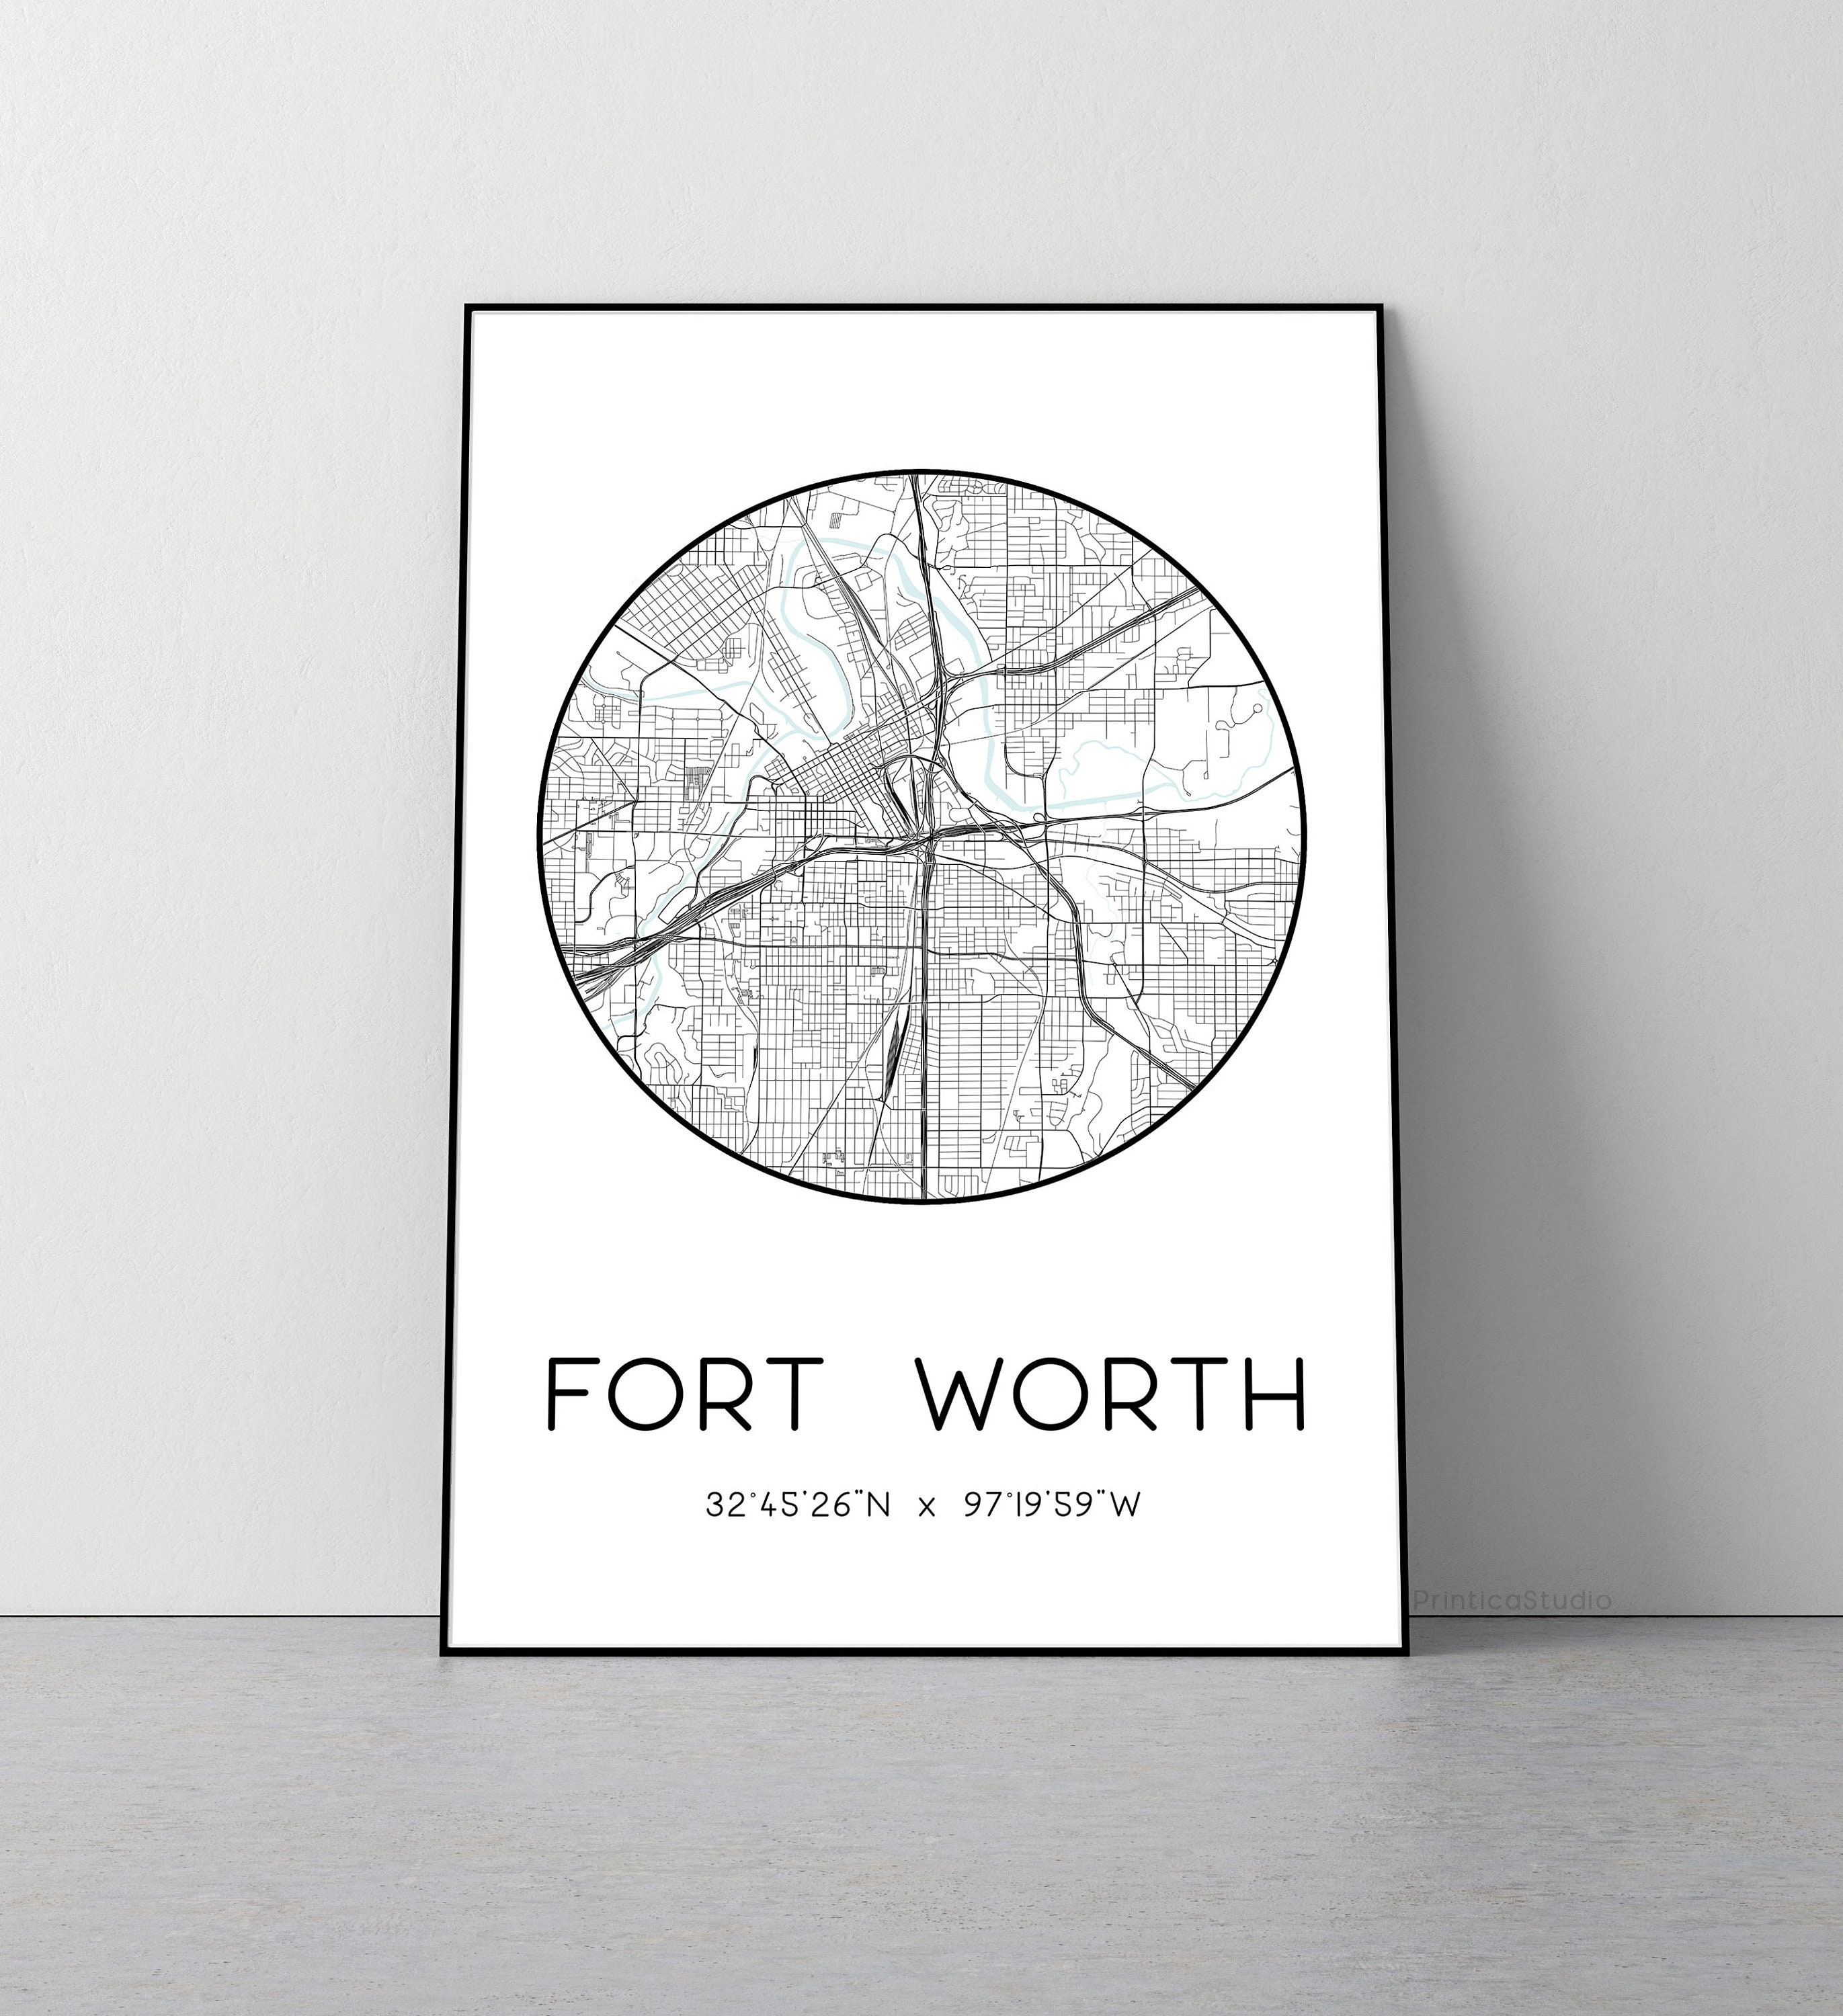 Fort Worth City Map Print | Fort Worth poster, Fort Worth map art, on map of levelland, map of north dfw, map of giddings, map of del city, map of panola college, map of marinette, map of phoenix mesa, map of telegraph, map of big bend np, map of alliance airport, map of spanish fort, map of fruita, map of ranger college, map of la marque, map of mcculloch county, map of dallas, map of snyder, map of lake bridgeport, map of west columbia, map of liberal,